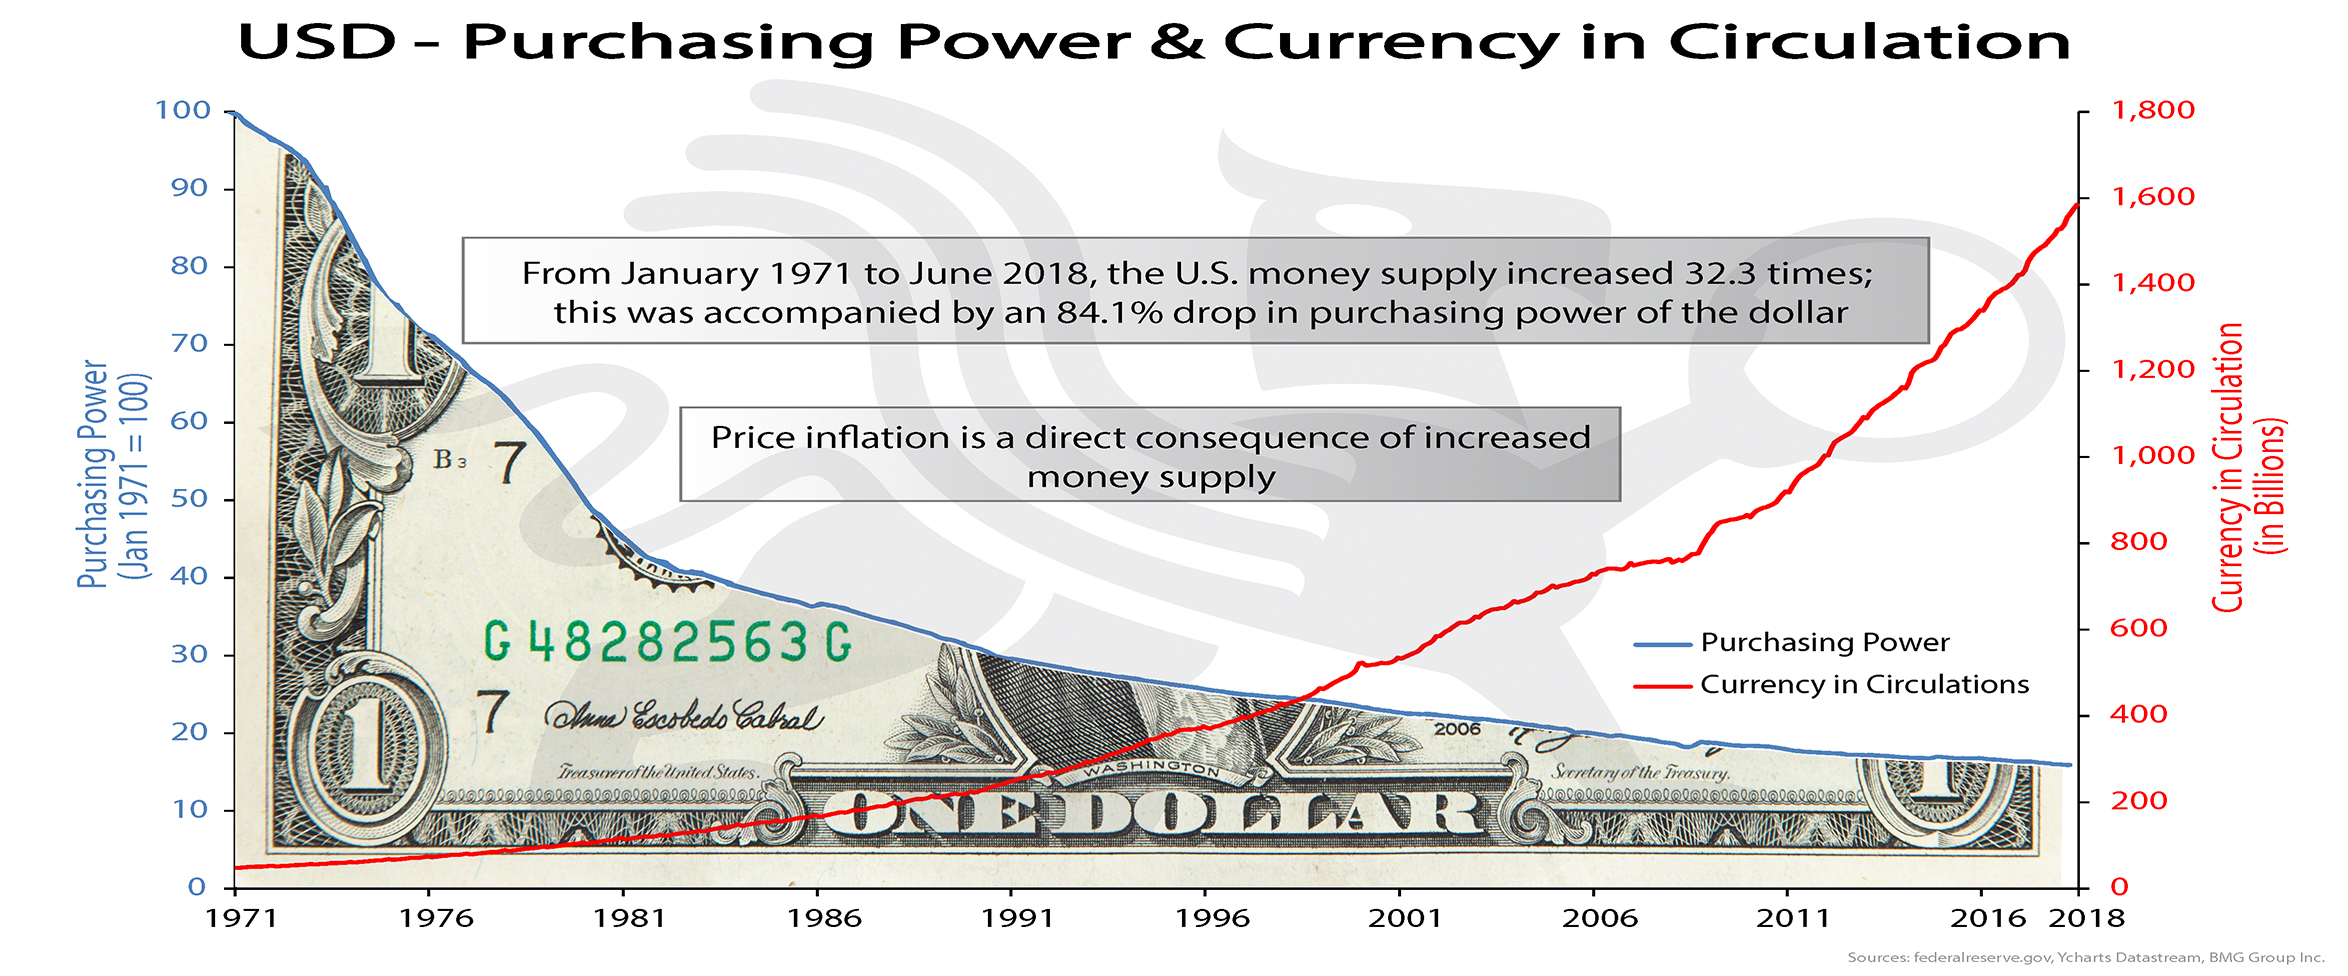 USD - Purchasing Power - Currency in Circulation | BMG